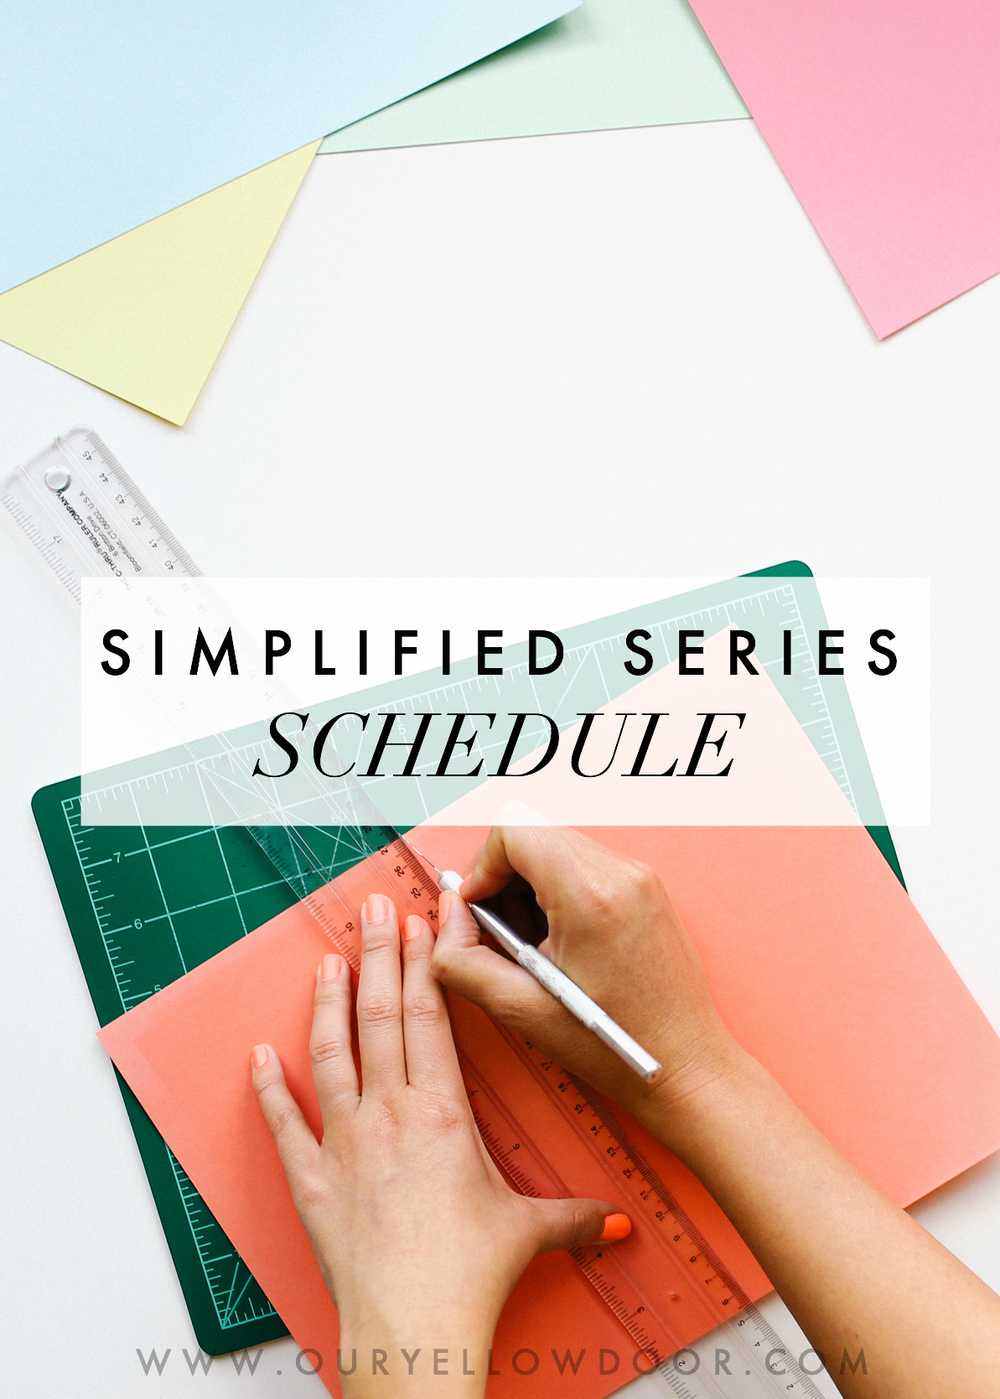 Simplified-Series-Schedule.jpg